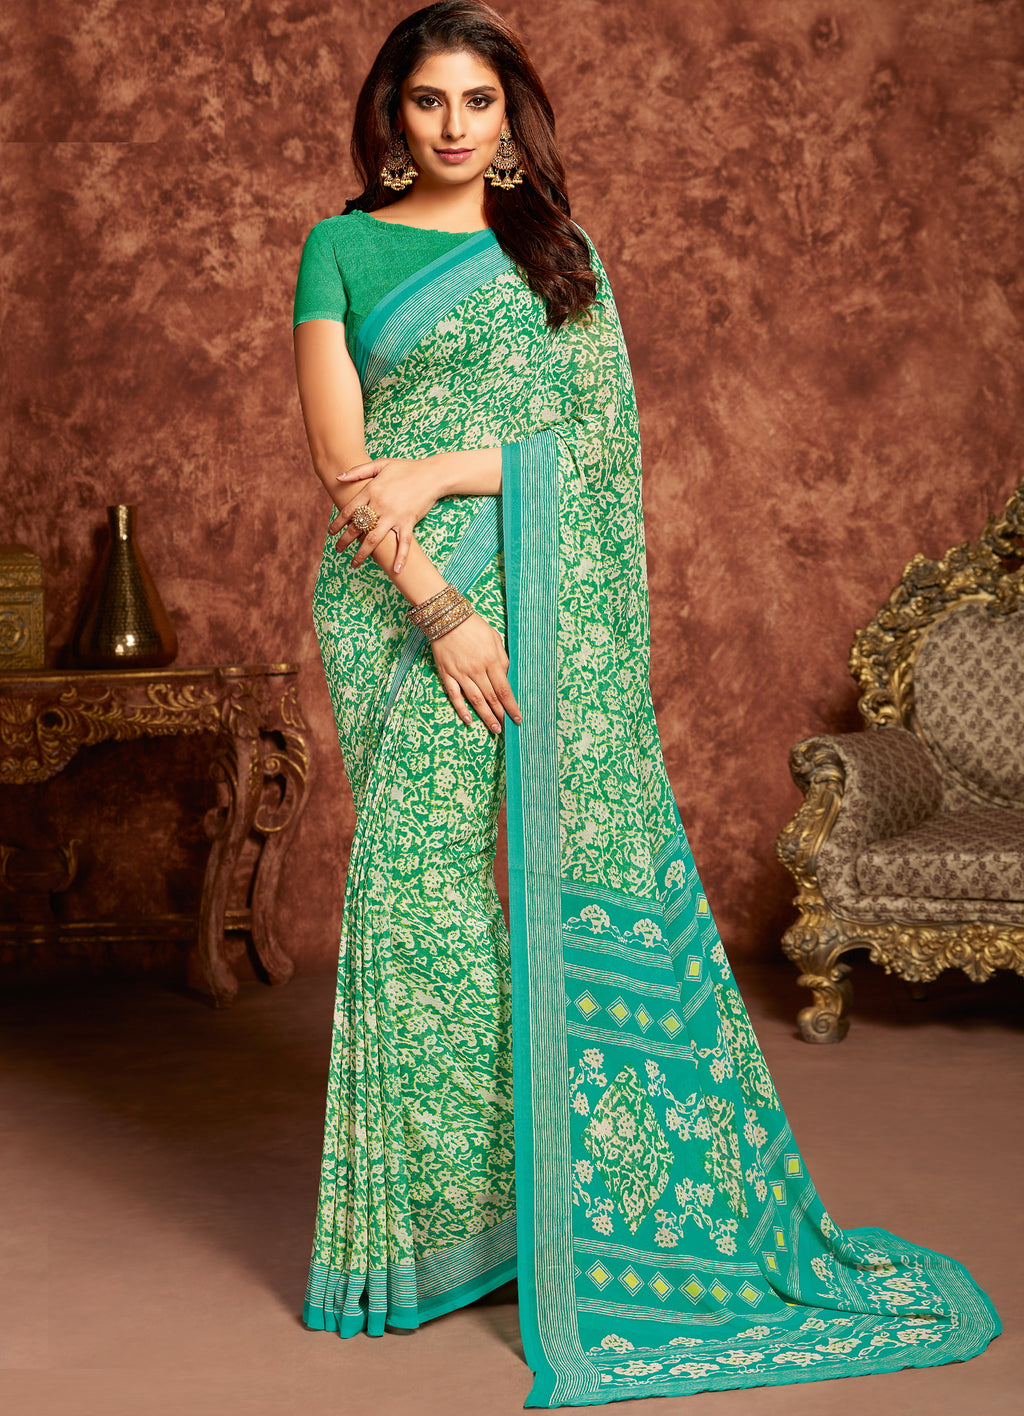 White & Green Color Georgette Beautiful Office Wear Sarees NYF-6277